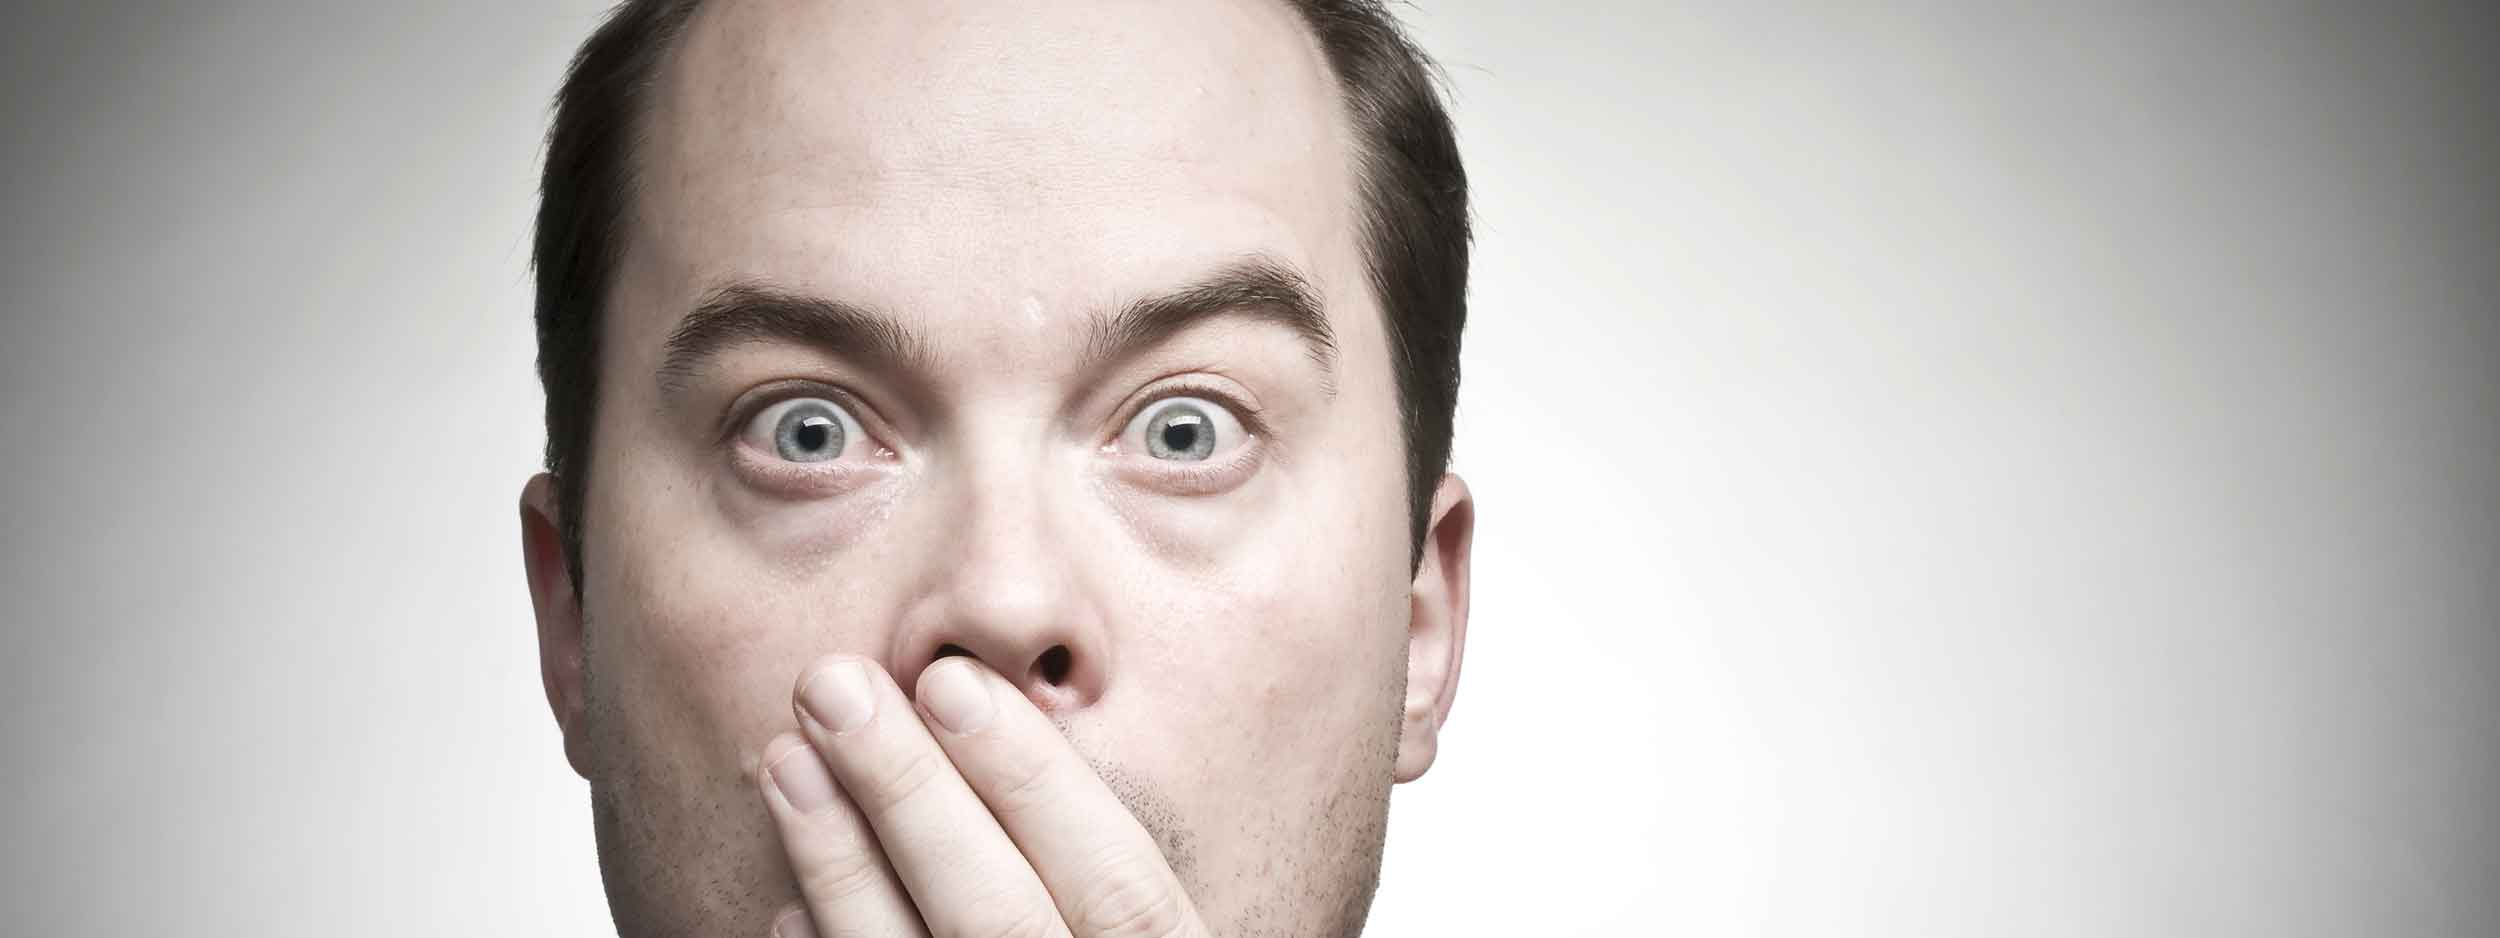 Man covering his mouth in shock after learning more about Tinnitus